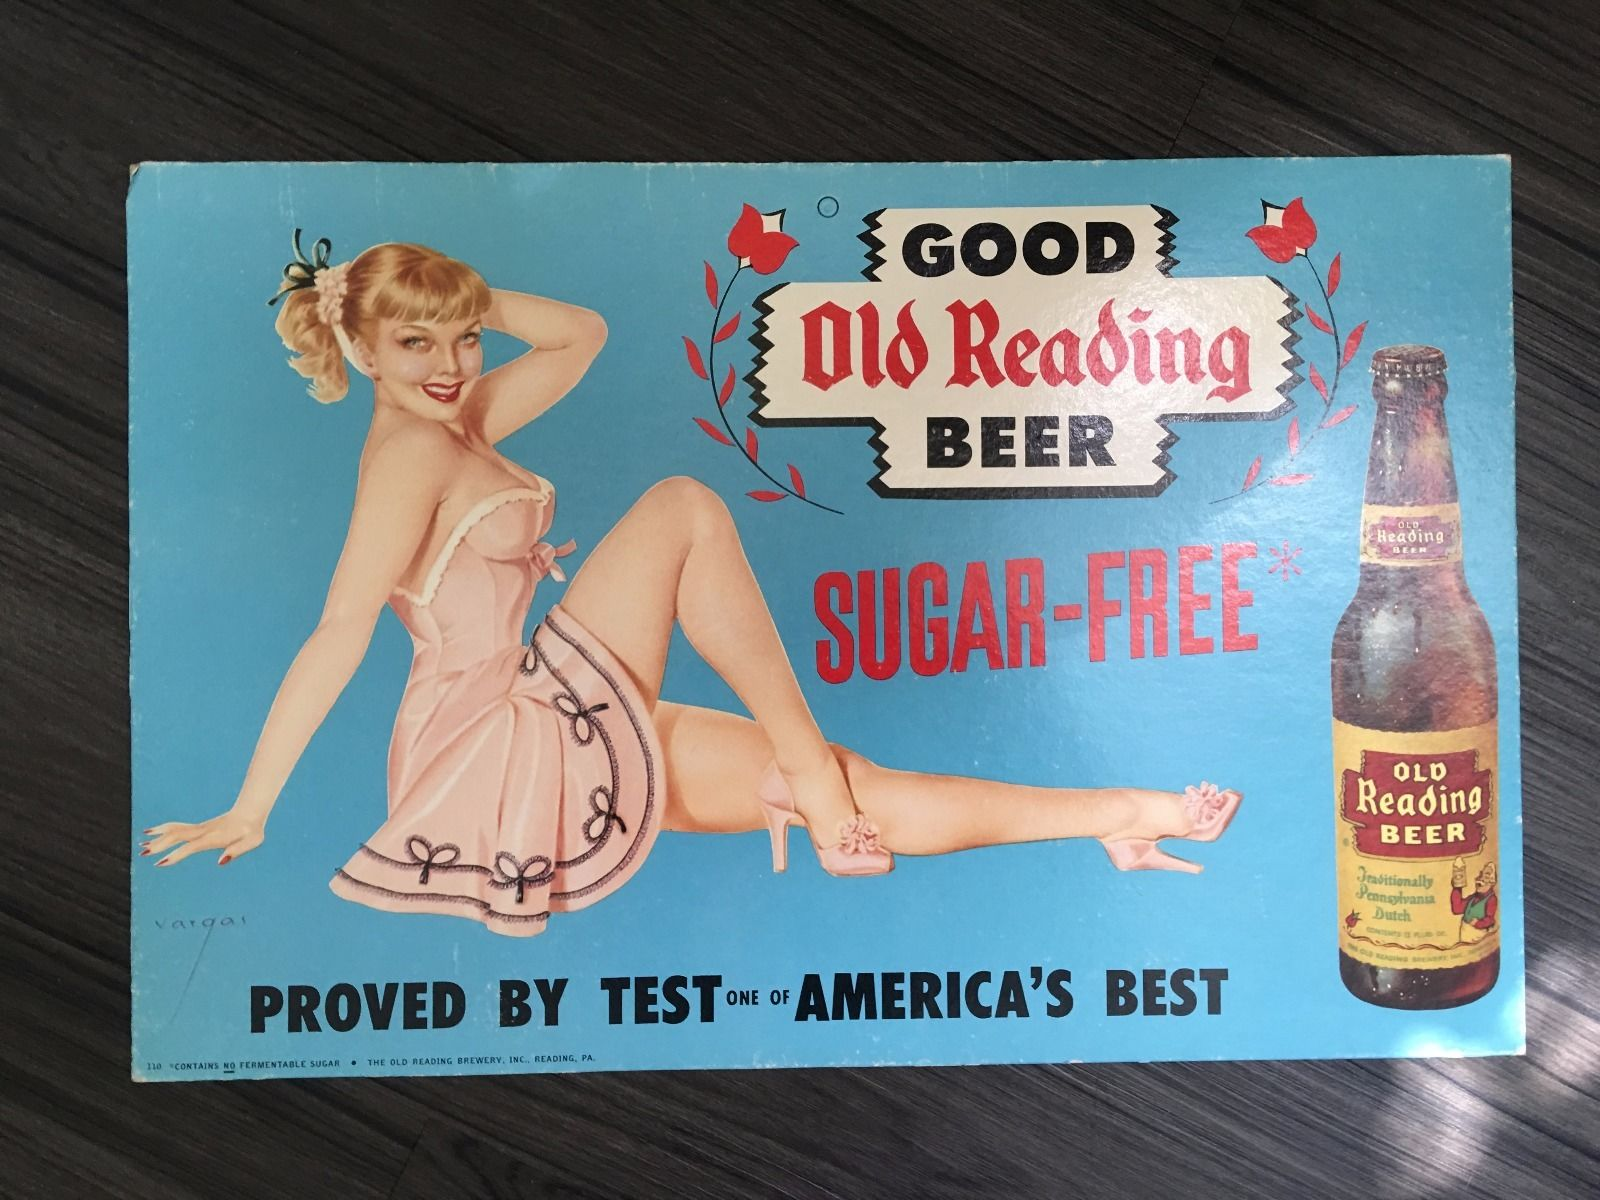 Old Reading Beer Vargas Pin-Ups